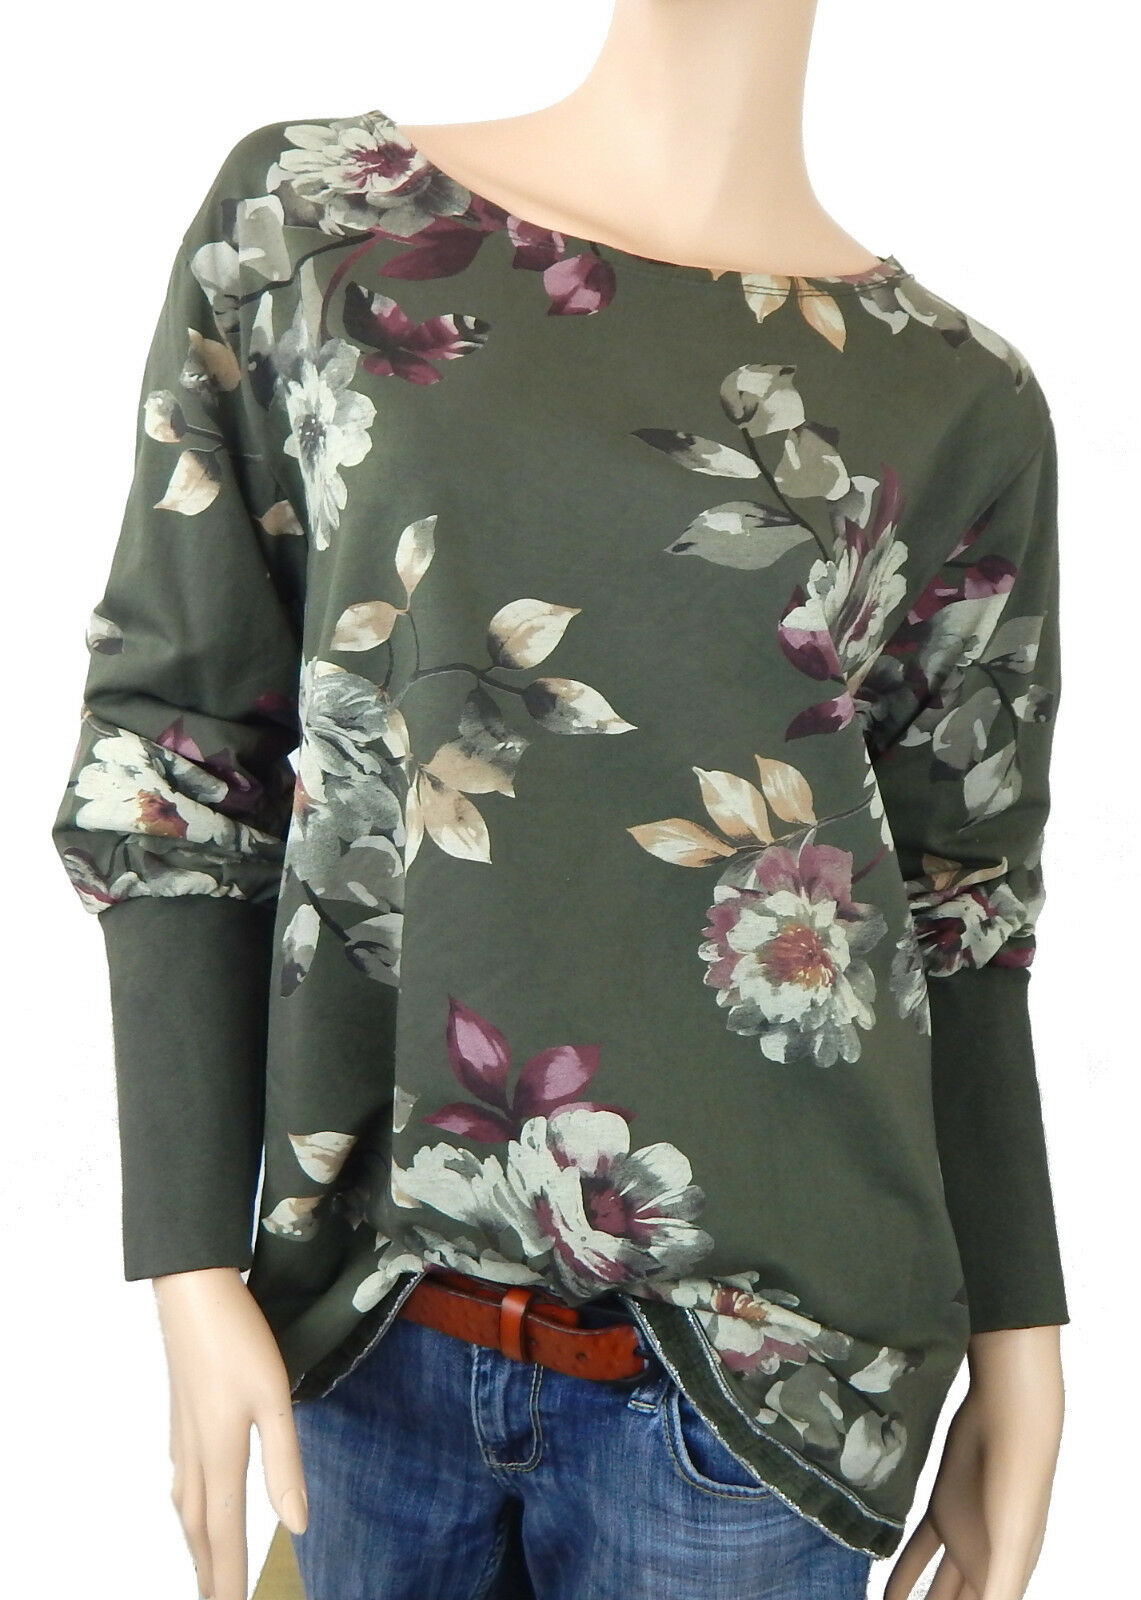 Ella Jonte Sweatshirt Green Sweat Sweater 44 46 Flowers Made in  Cotton